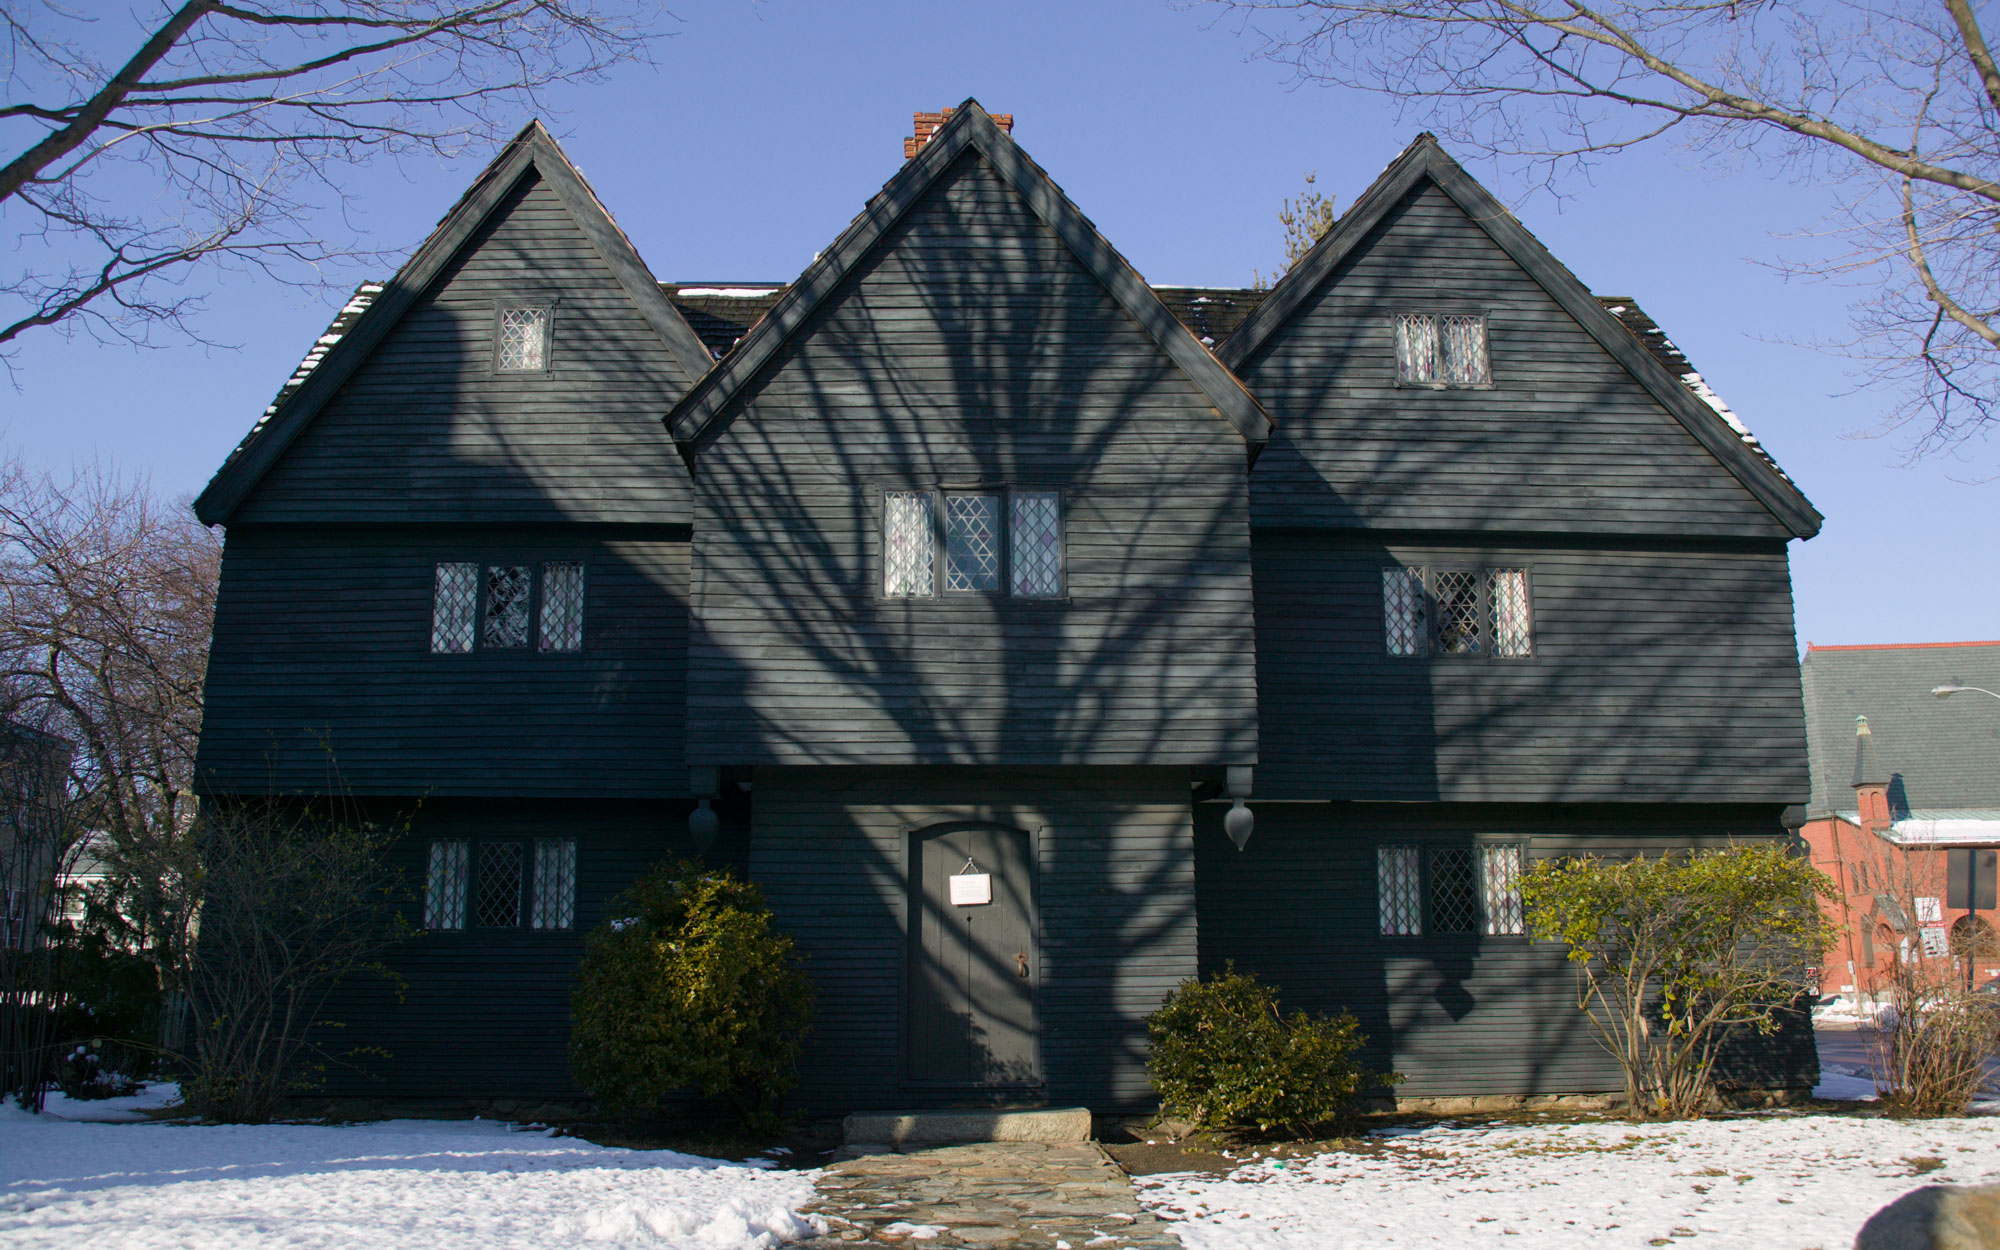 Massachusetts: The Witch House of Salem